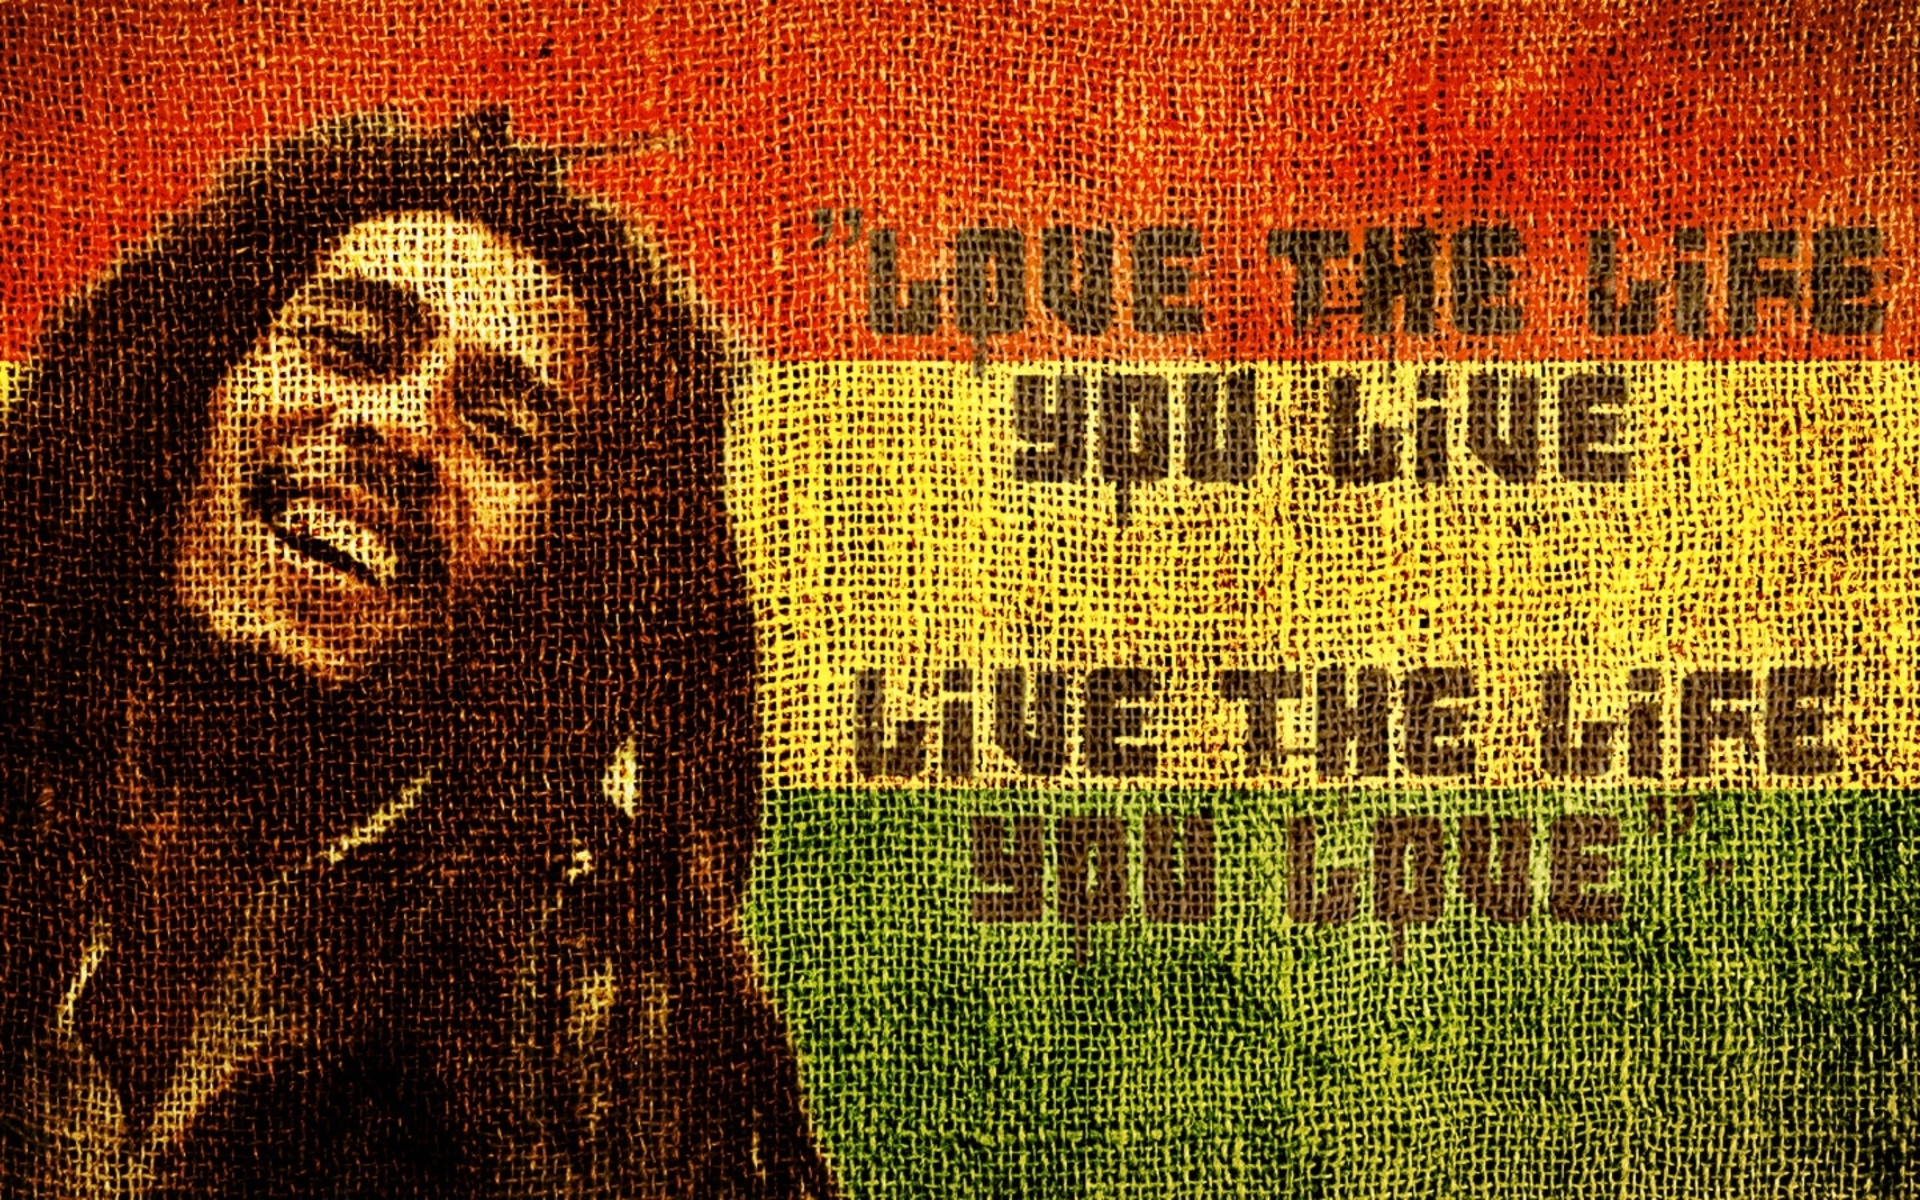 Bob Marley Love The Life You Live 7354 Hd Wallpaper